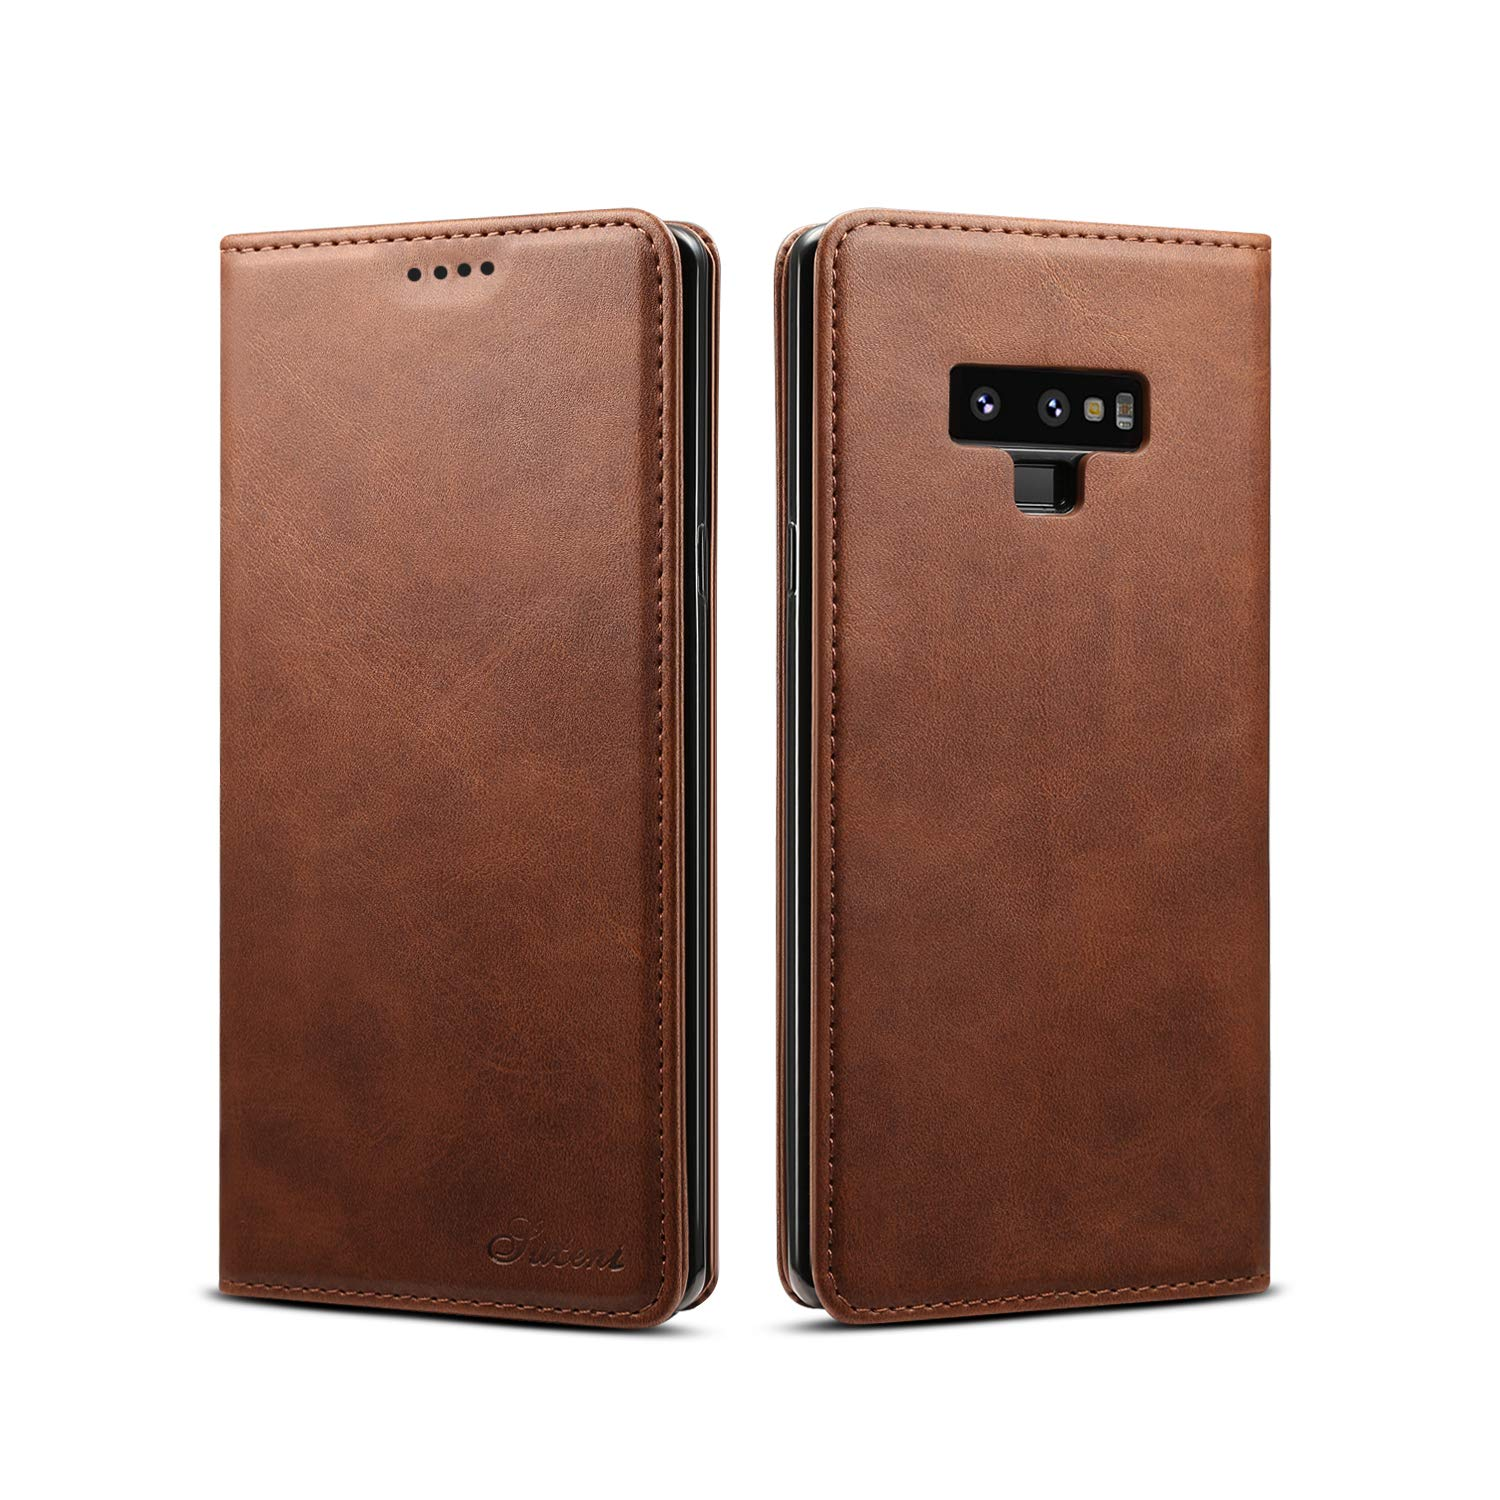 Galaxy Note 9 Leather Wallet Case, Bpowe Ultra Slim Business Style Folding Flip Case with Kickstand Card Slots Magnetic Closure Protective Cover for Samsung Galaxy Note 9 (Brown)